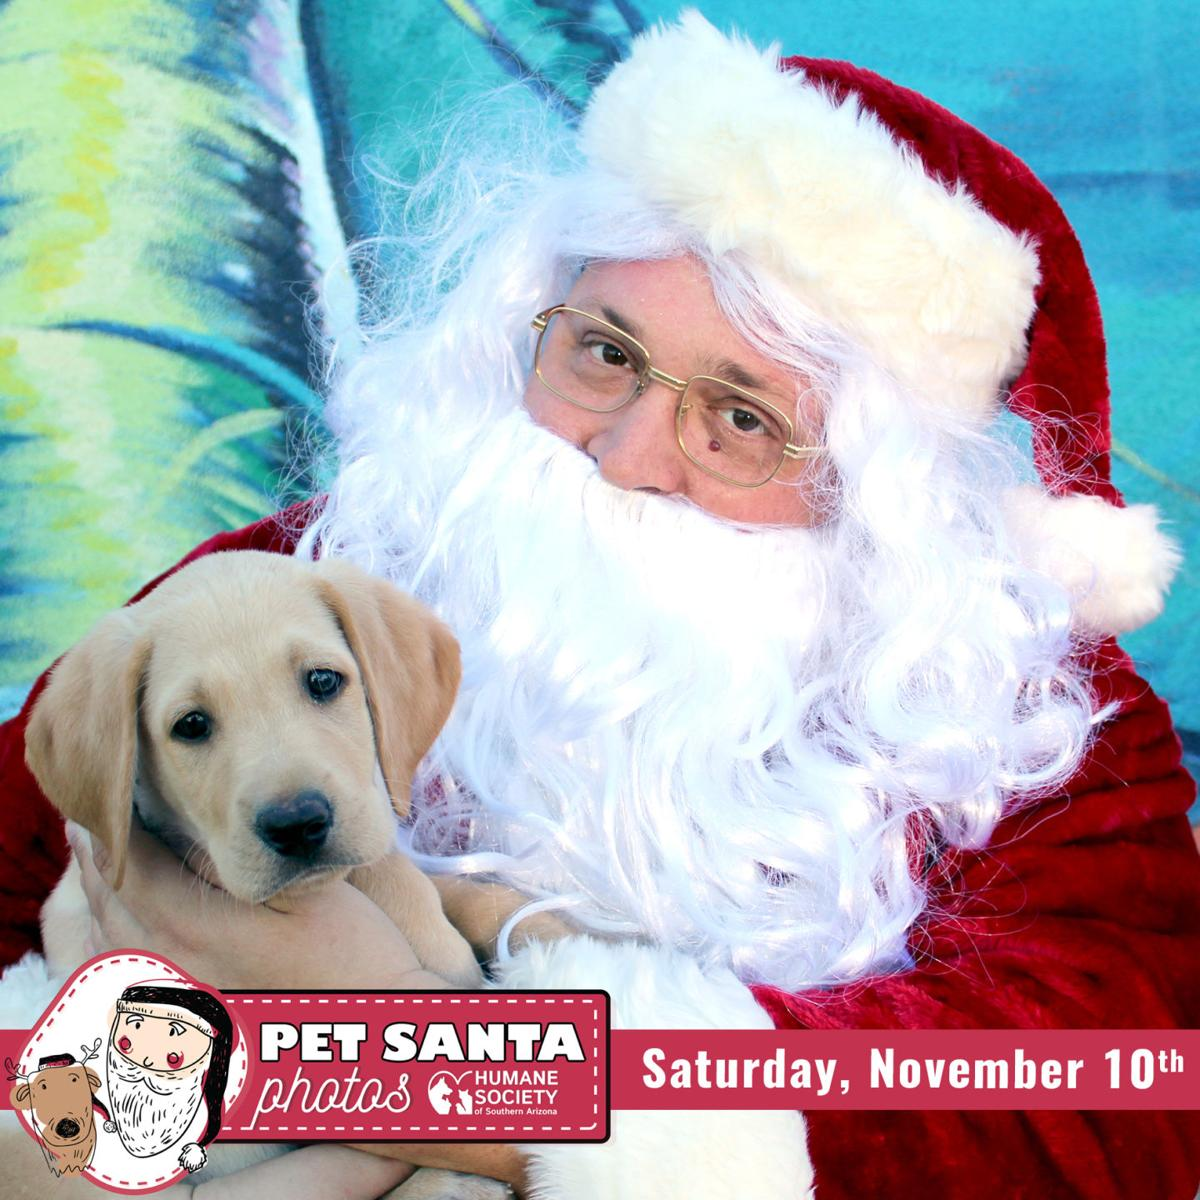 Your pet can take photos with Santa at Tucson Humane Society | Local ...